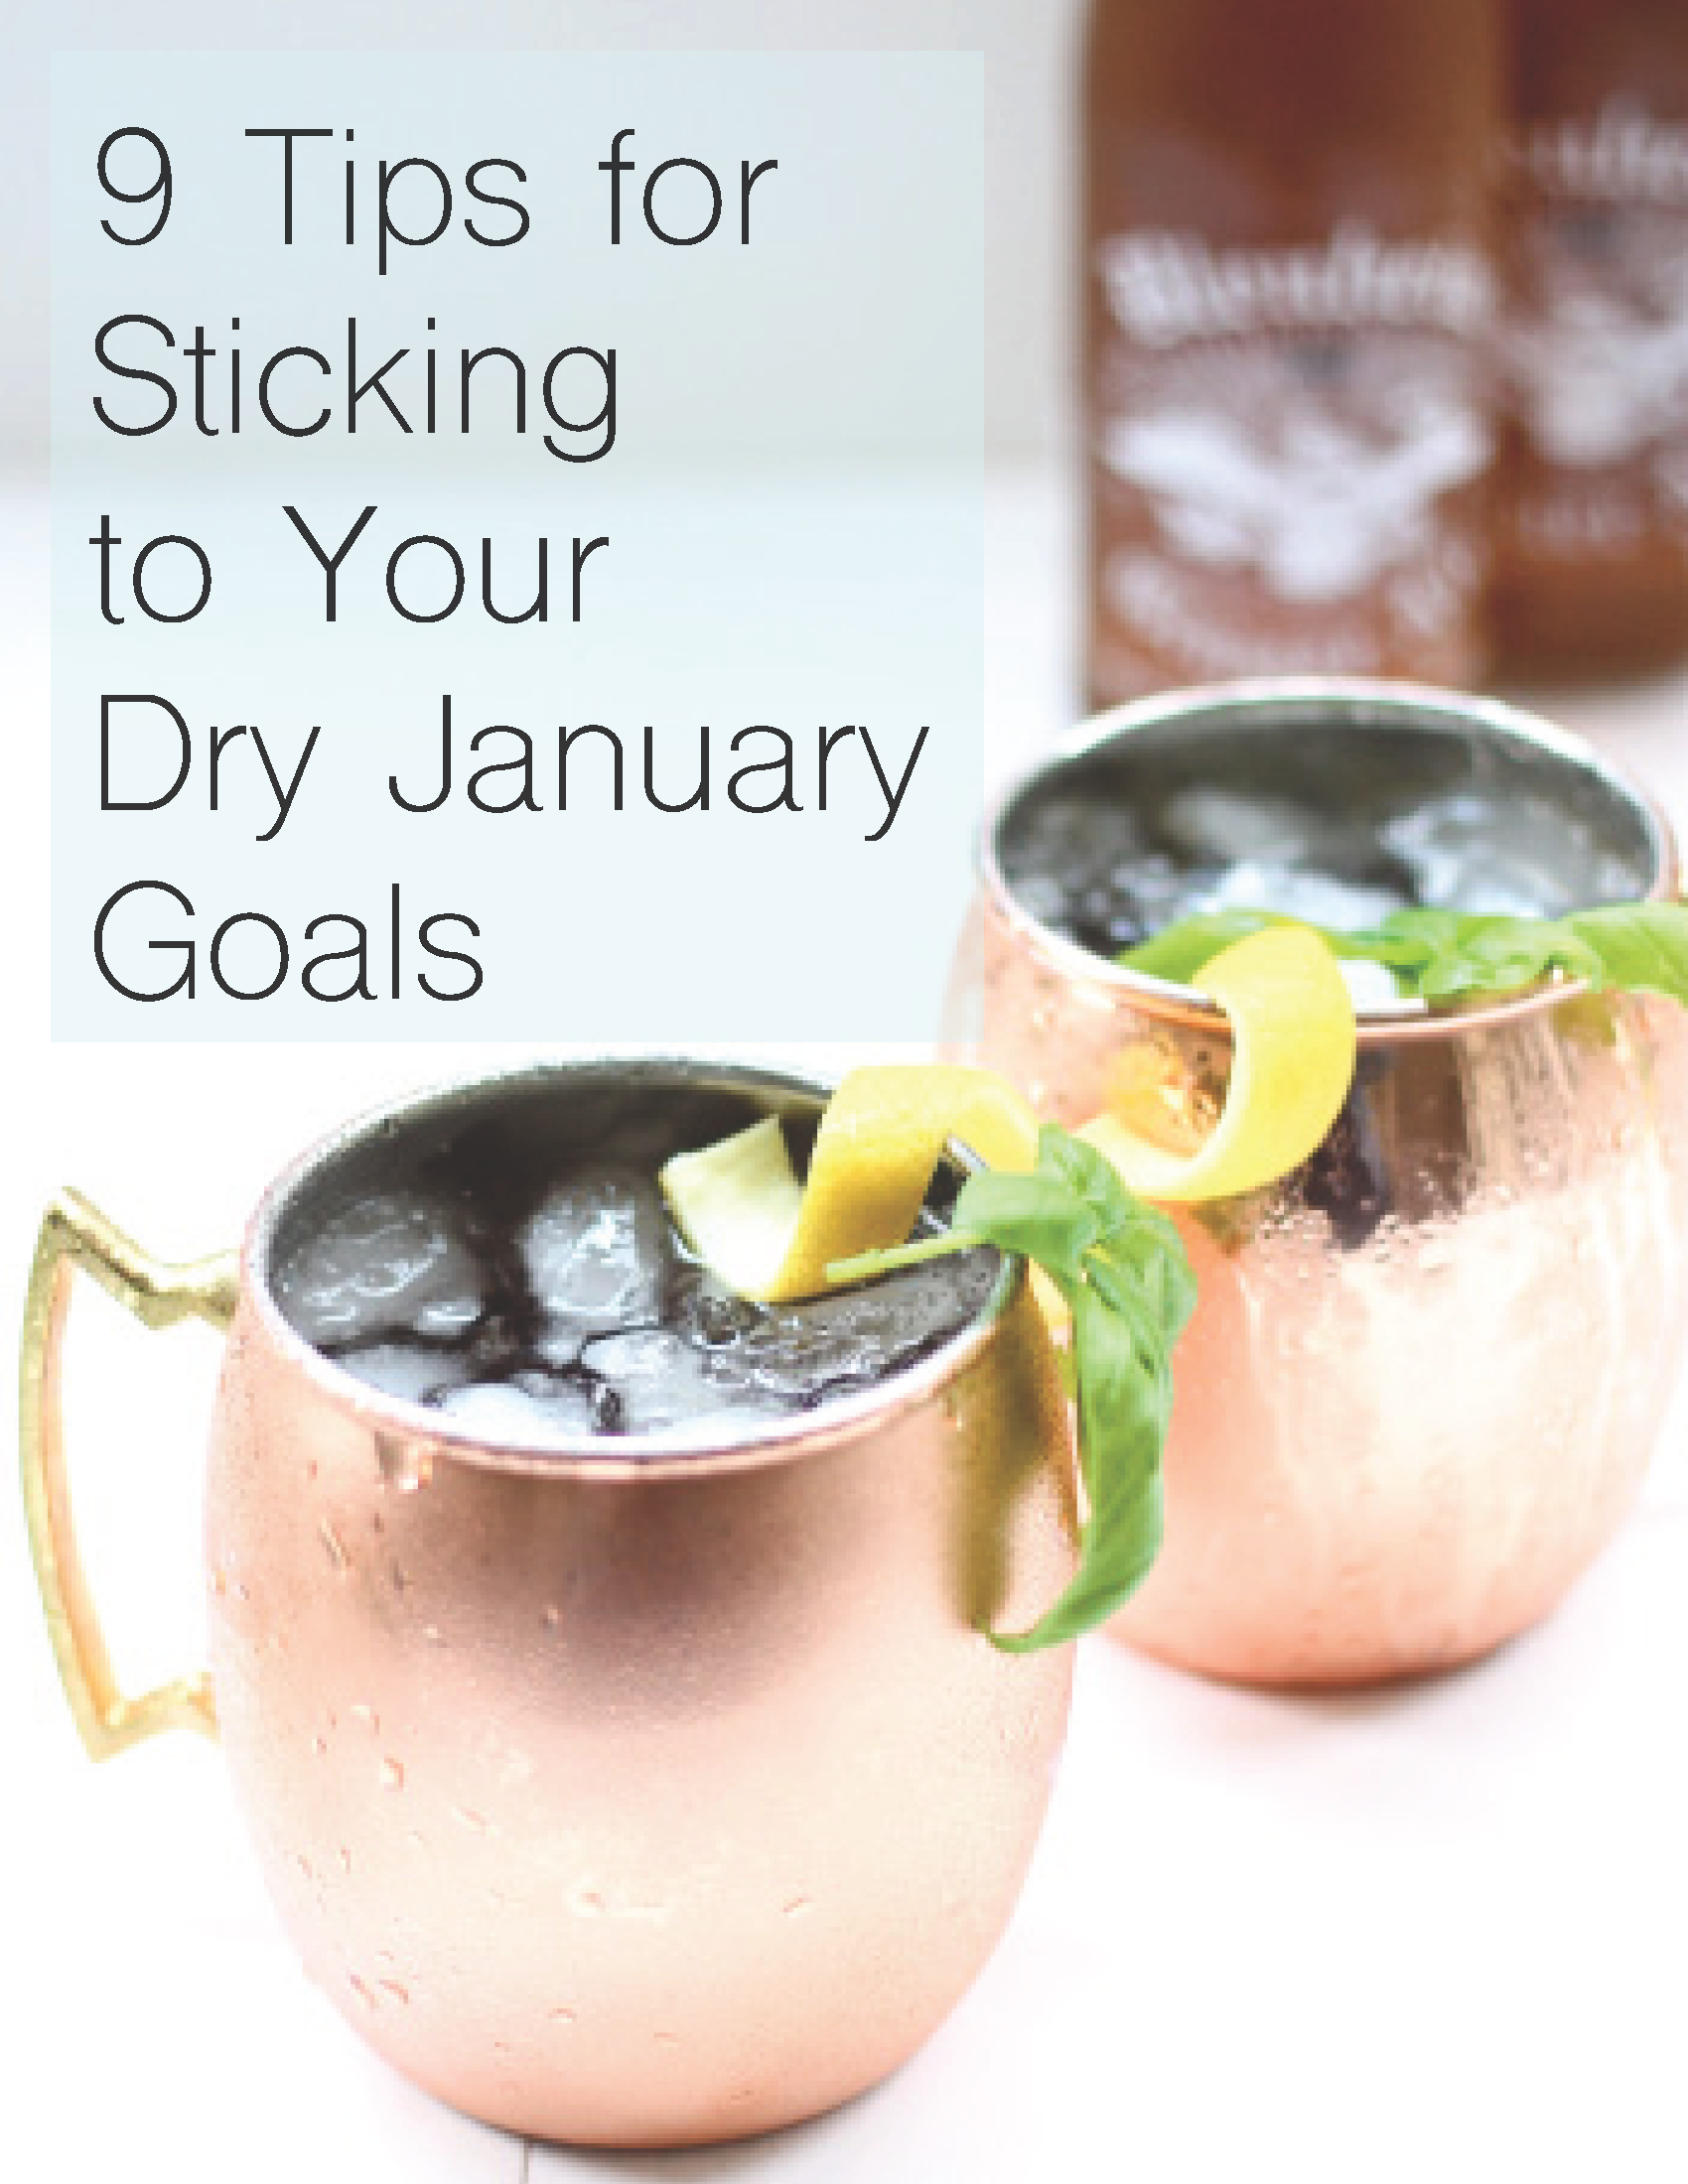 9 Tips for Sticking to Your Dry January Goals